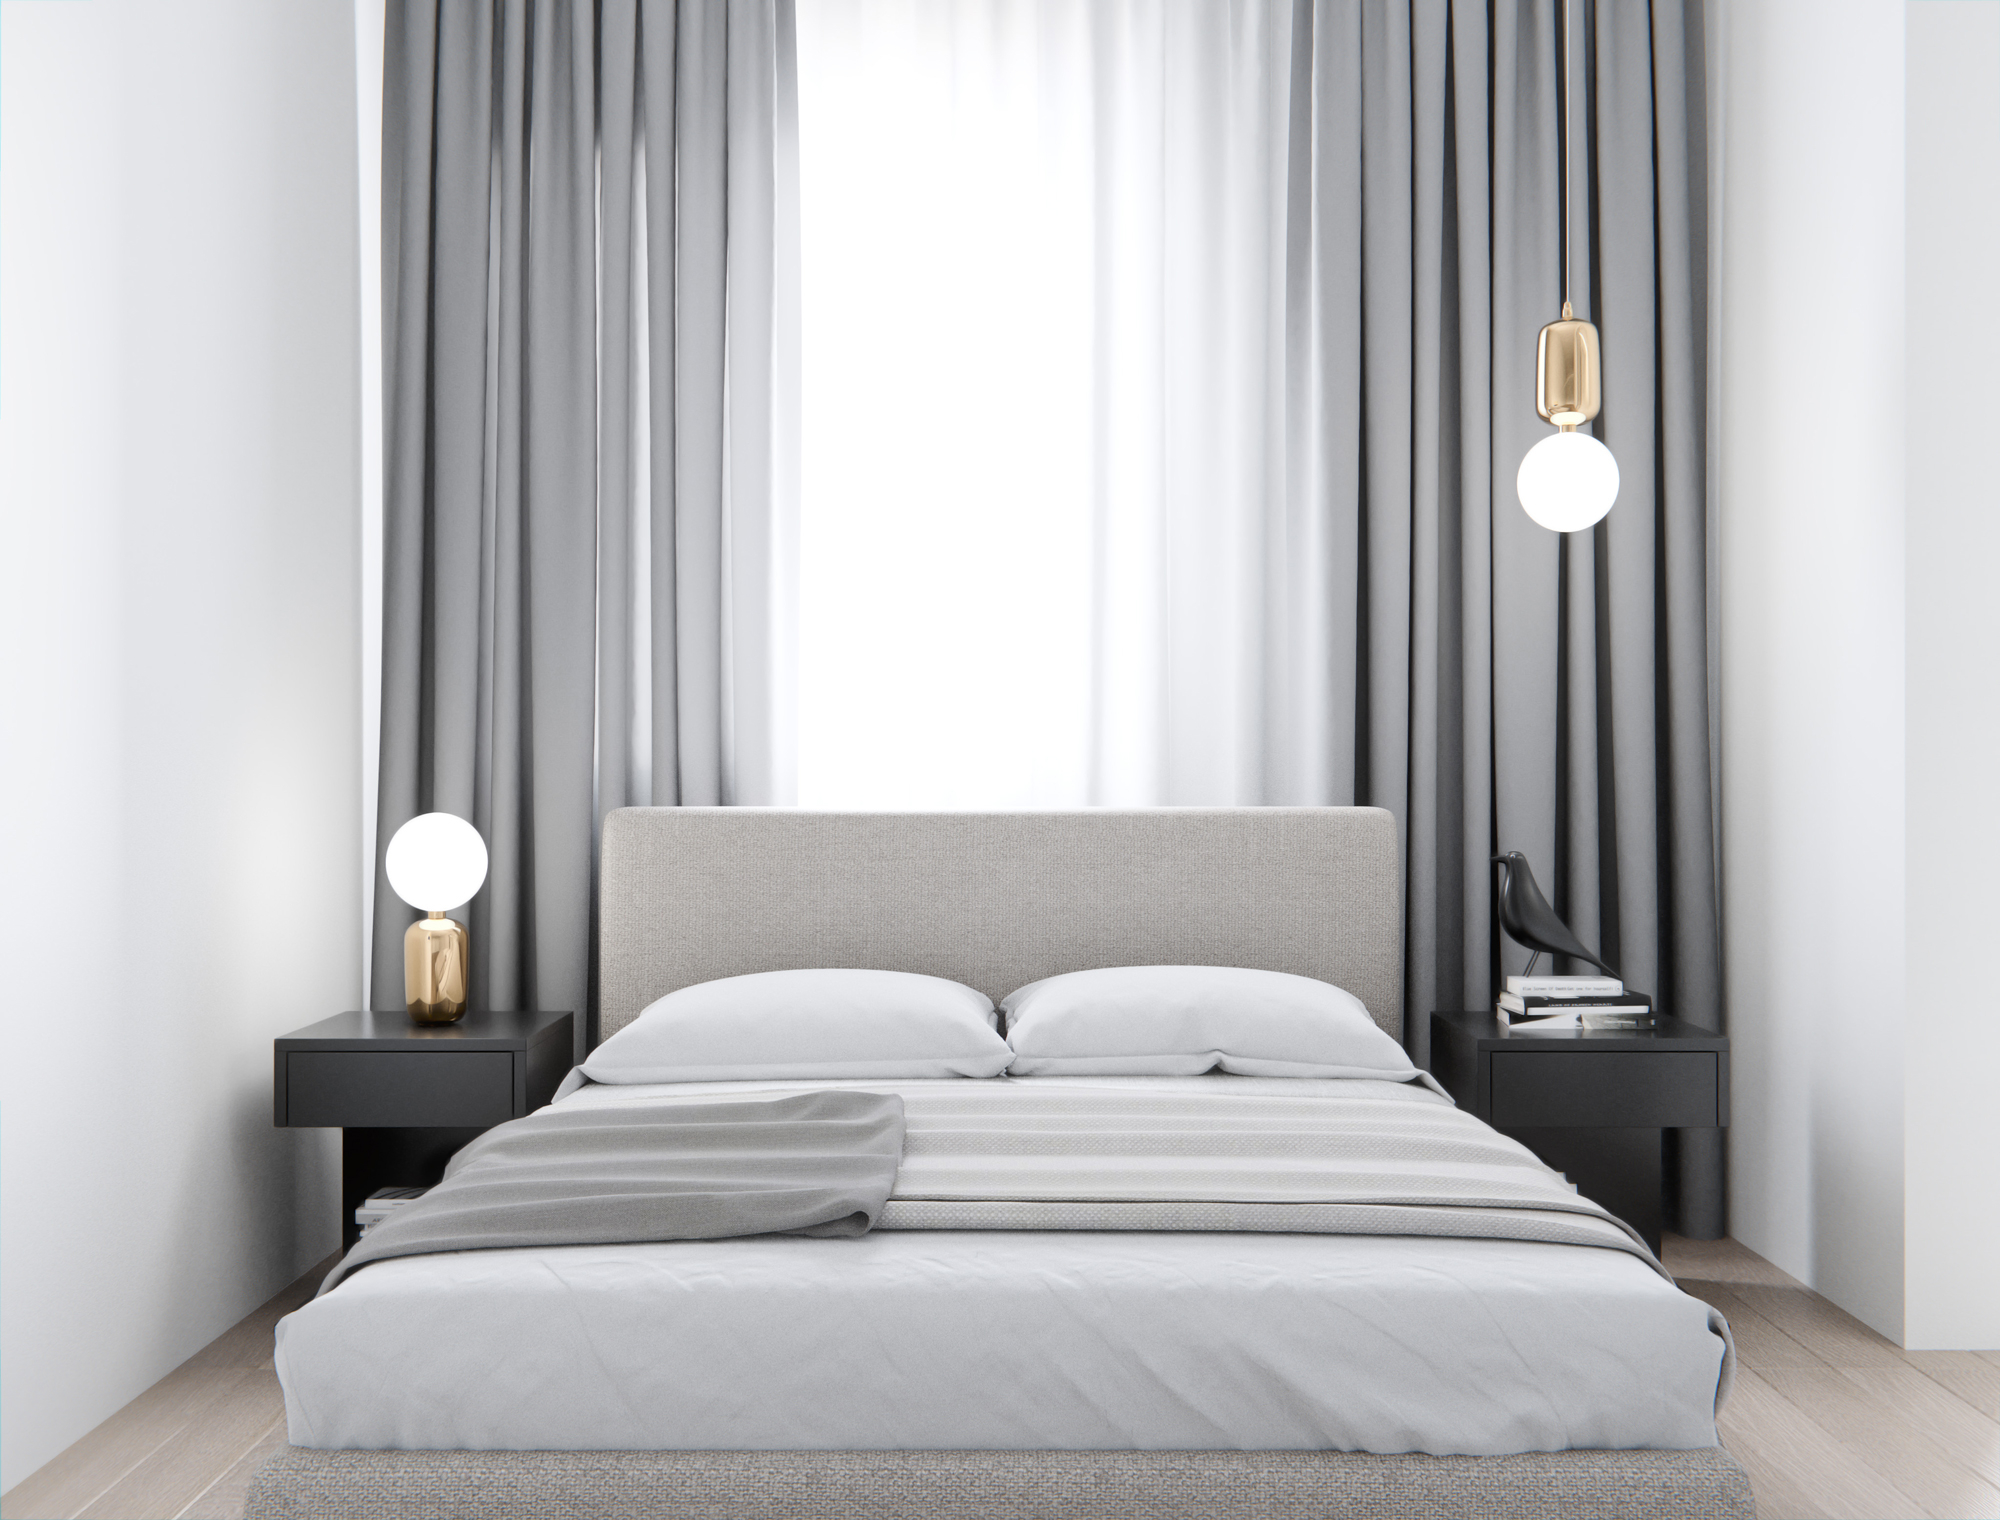 Bedroom Ideas 52 Modern Design Ideas For Your Bedroom The Luxpad with Modern Bedroom Decoration